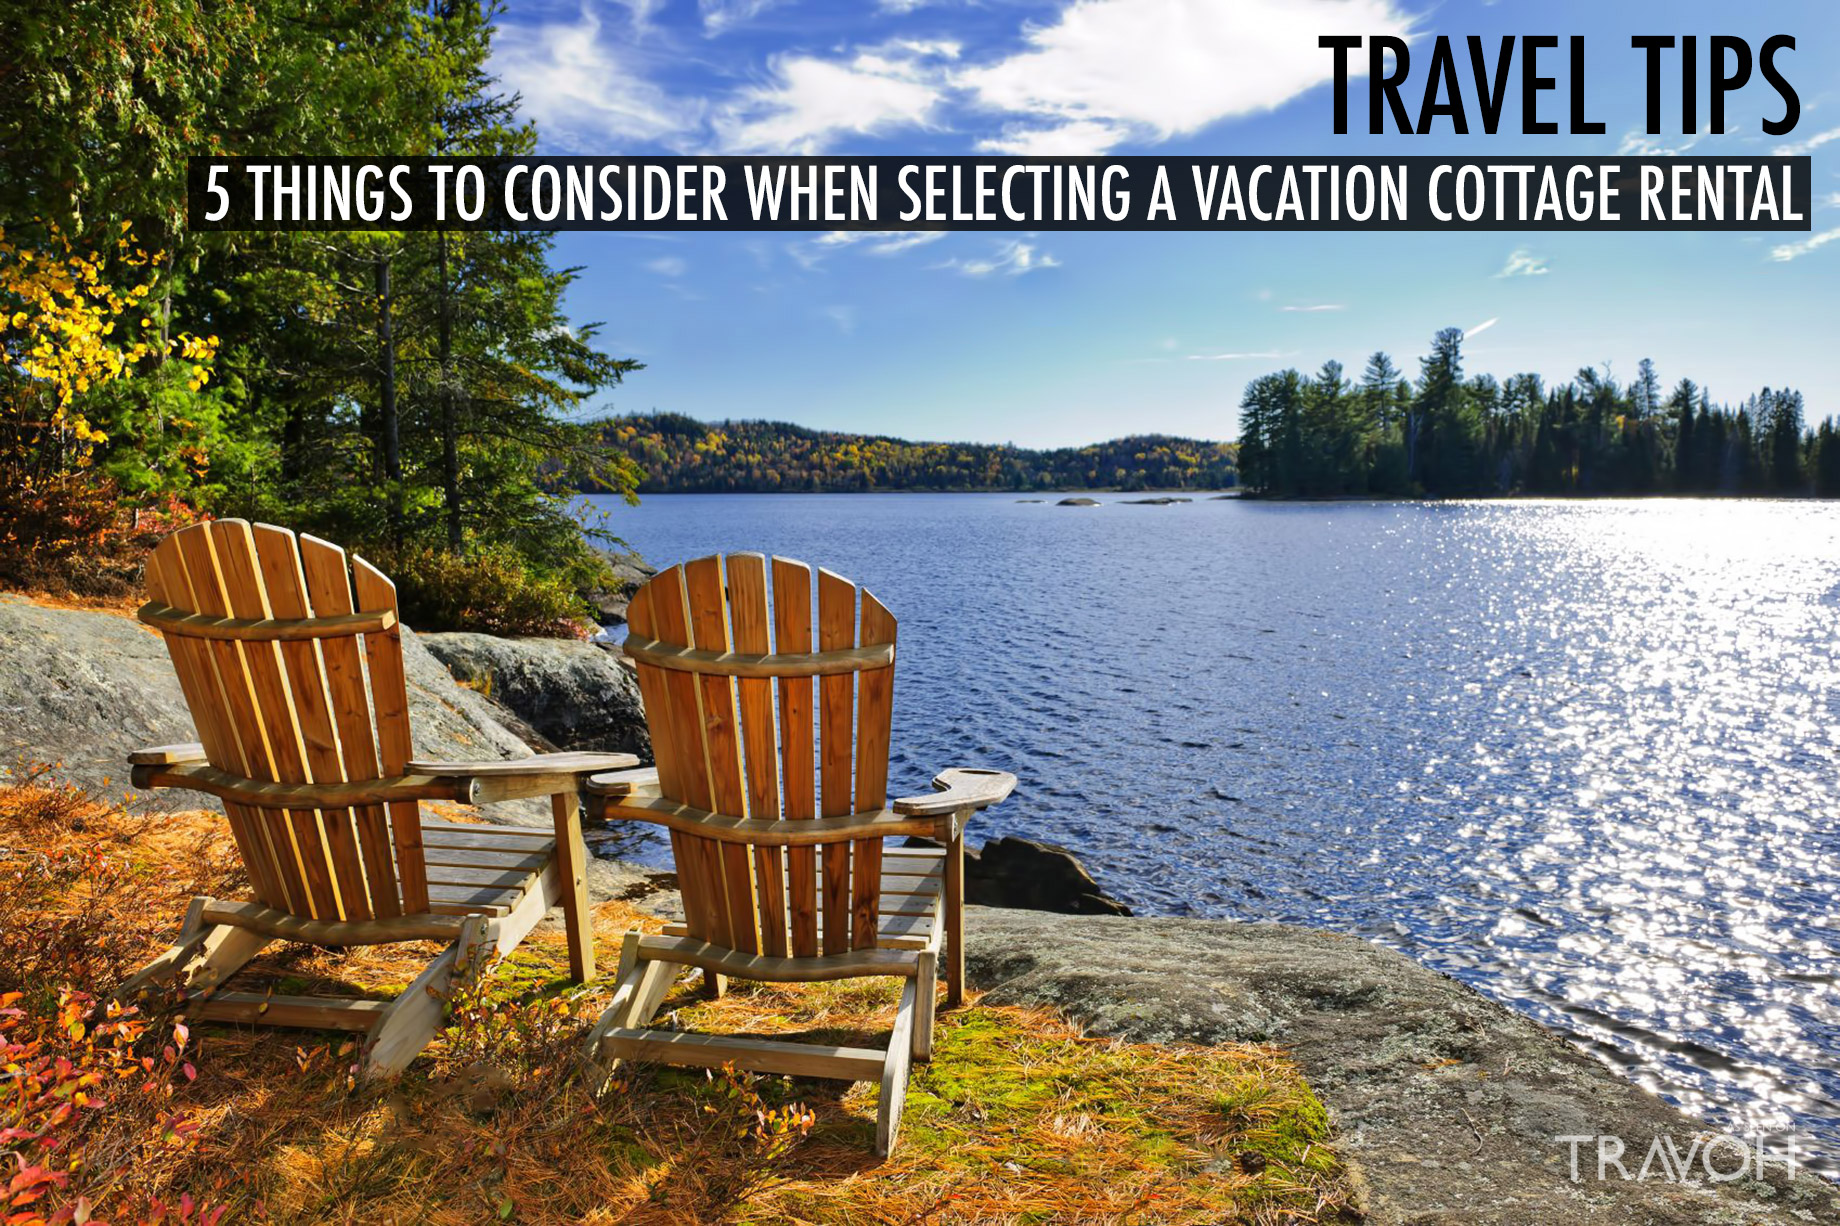 Travel Tips - 5 Things to Consider When Selecting a Vacation Cottage Rental